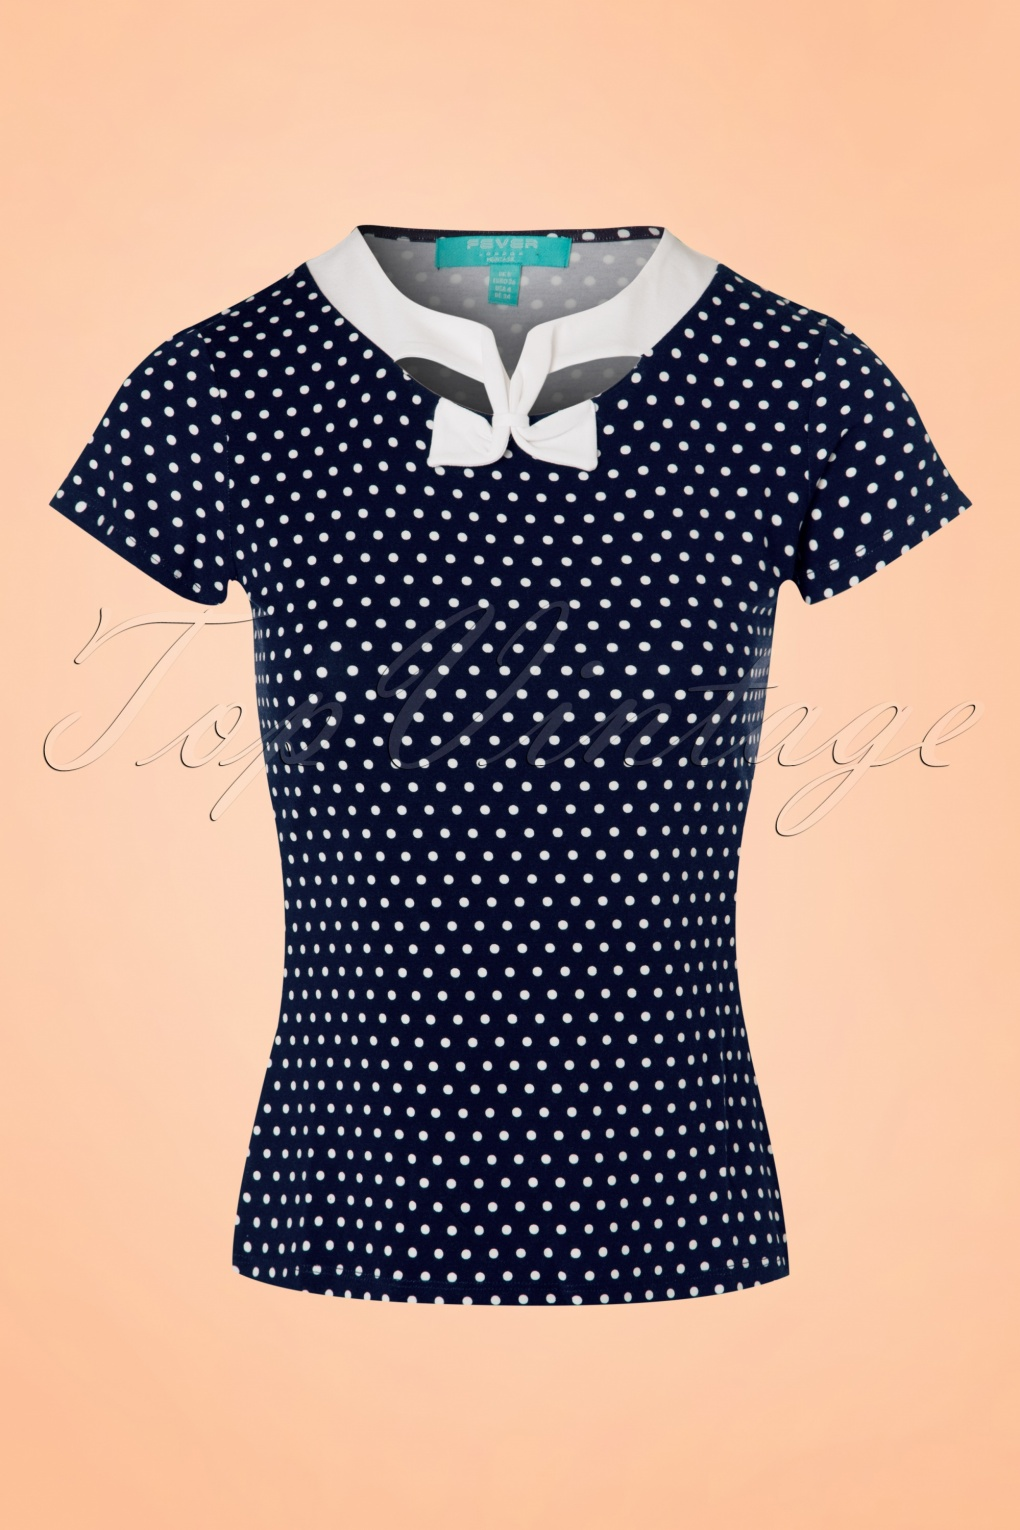 1950s Rockabilly & Pinup Tops, Shirts, Blouses 50s Holywell Polkadot Top in Navy £38.62 AT vintagedancer.com